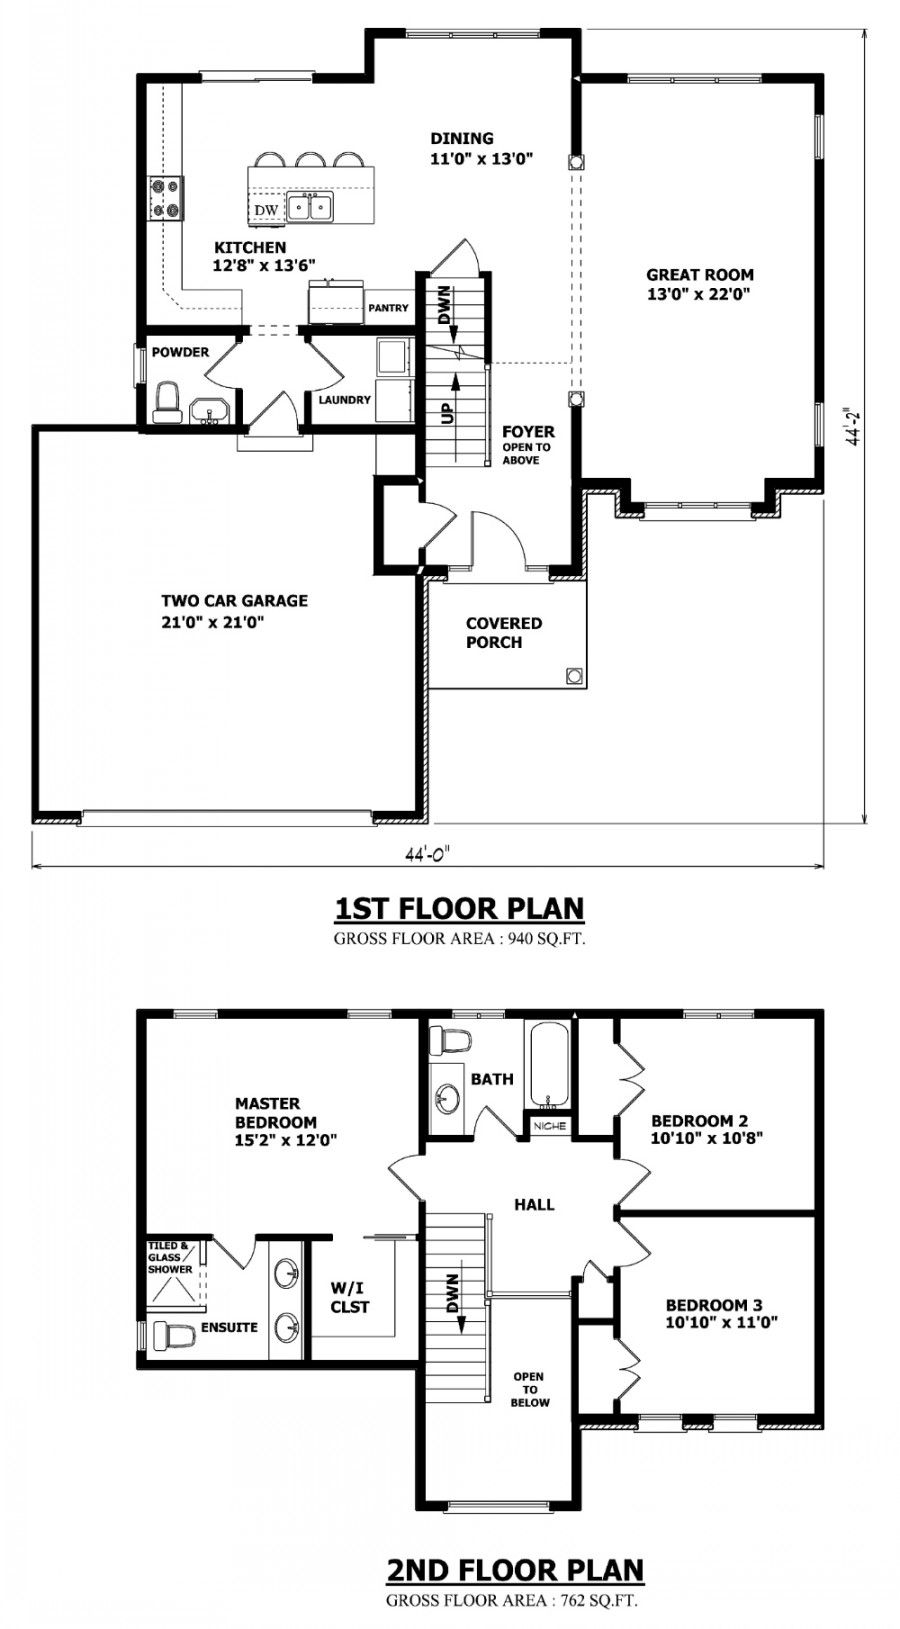 Home designs custom house plans stock house plans amp for Two story house design